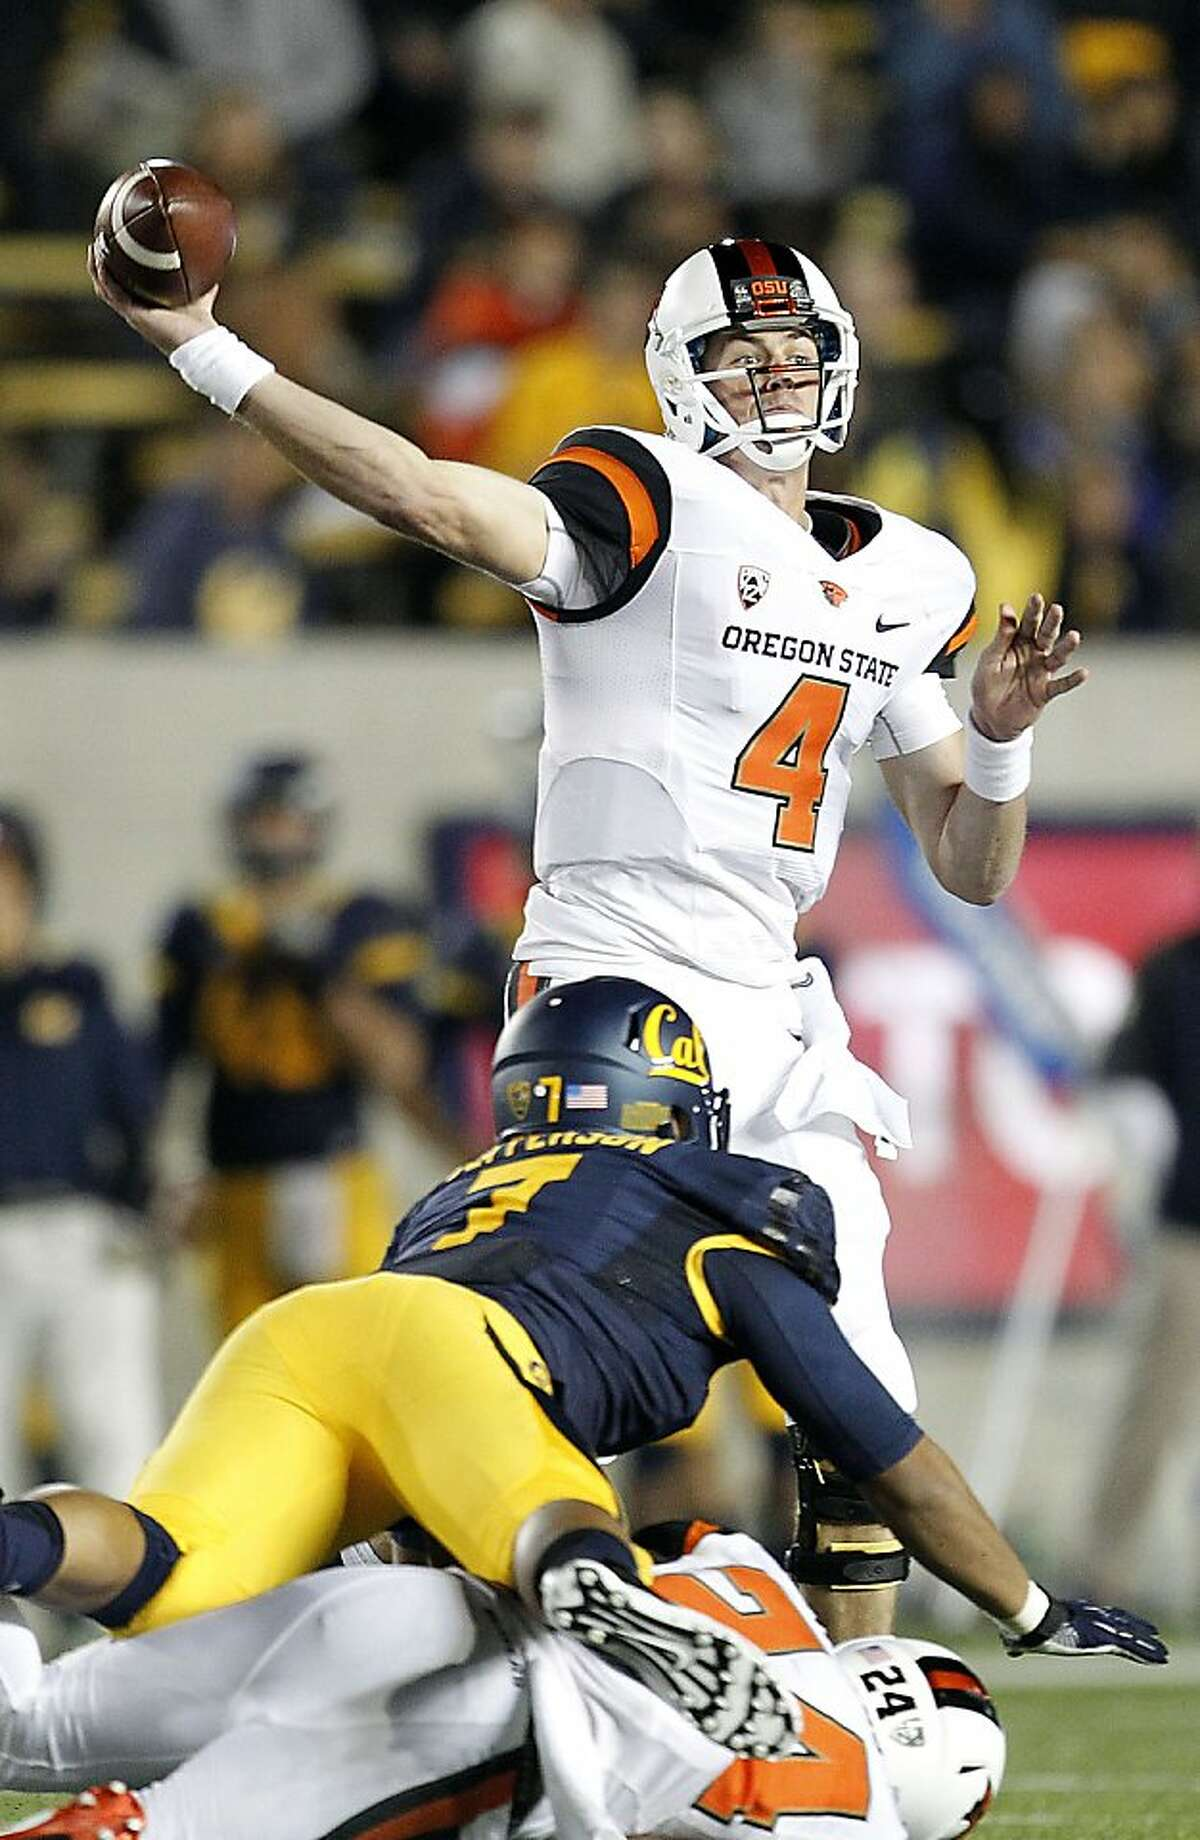 Oregon State quarterback Sean Mannion (4) throws against California during the first half of an NCAA college football game in Berkeley, Calif., Saturday, Oct. 19, 2013. (AP Photo/Tony Avelar)